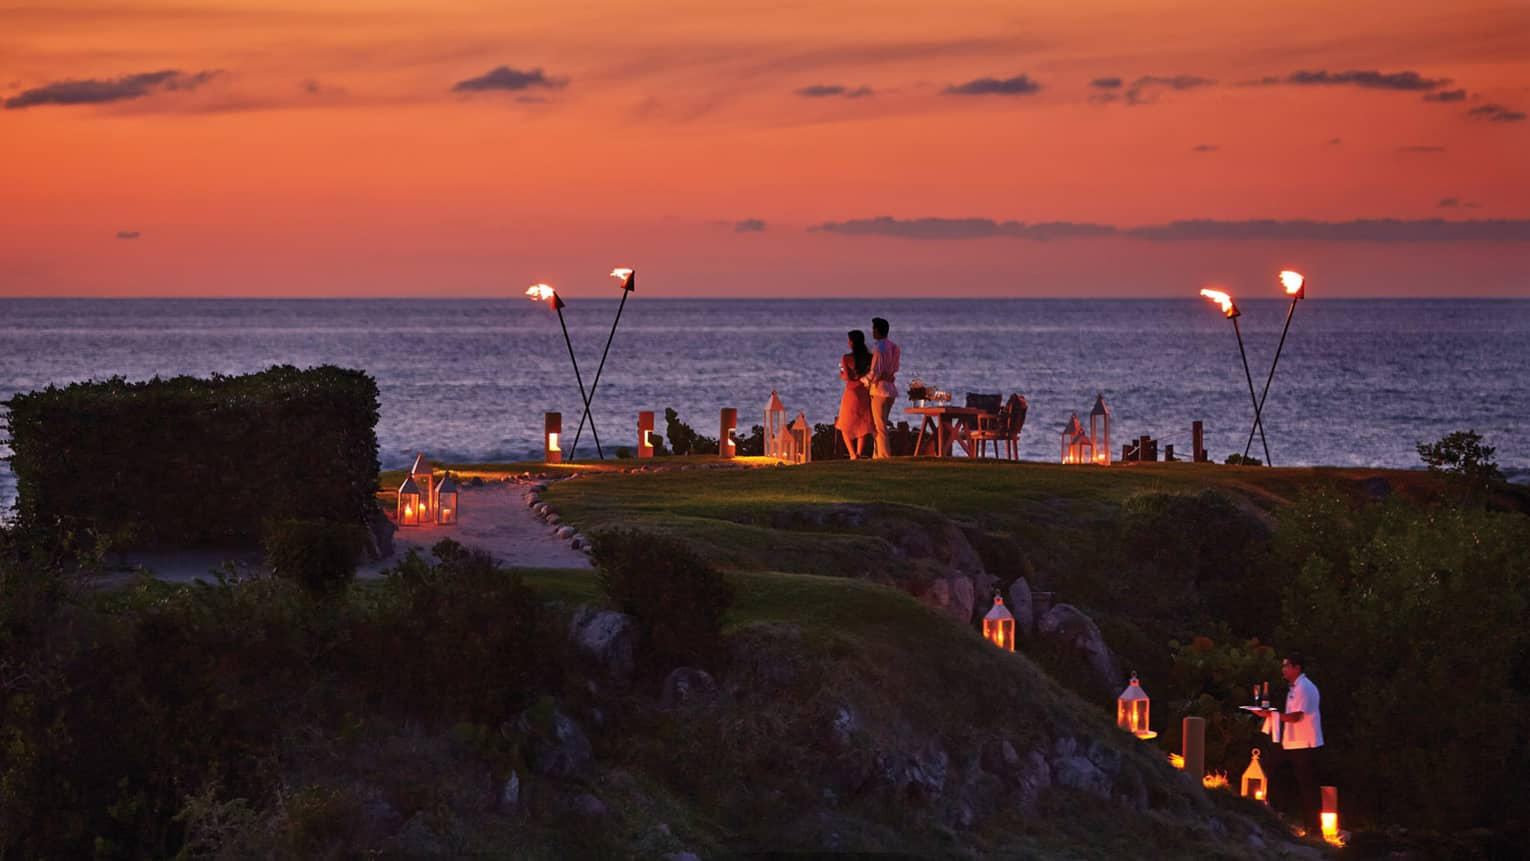 Couple stands on The Rock outpost at dusk, overlooking ocean with private dining table with lanterns, torches